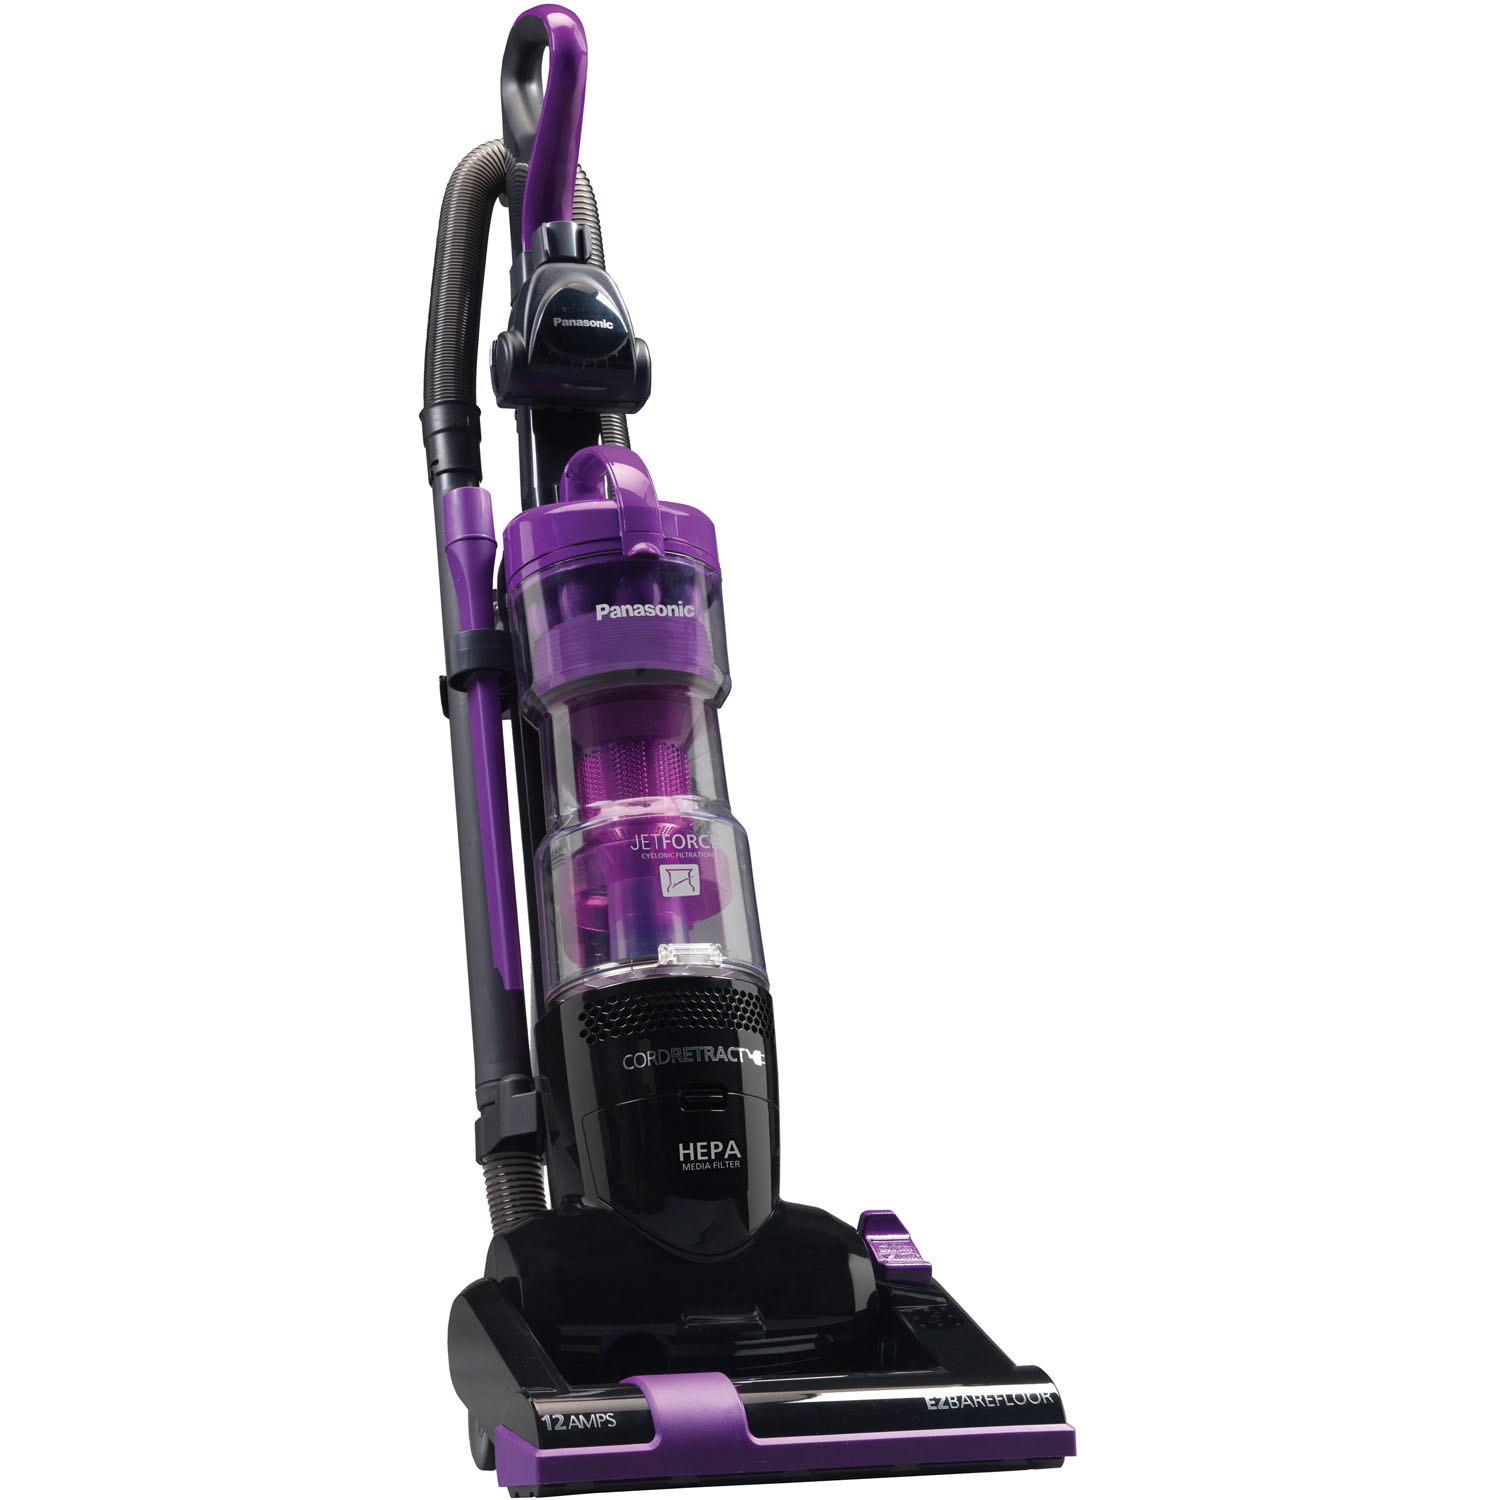 Upright Vacuums Upright Vacuum Cleaners Sears